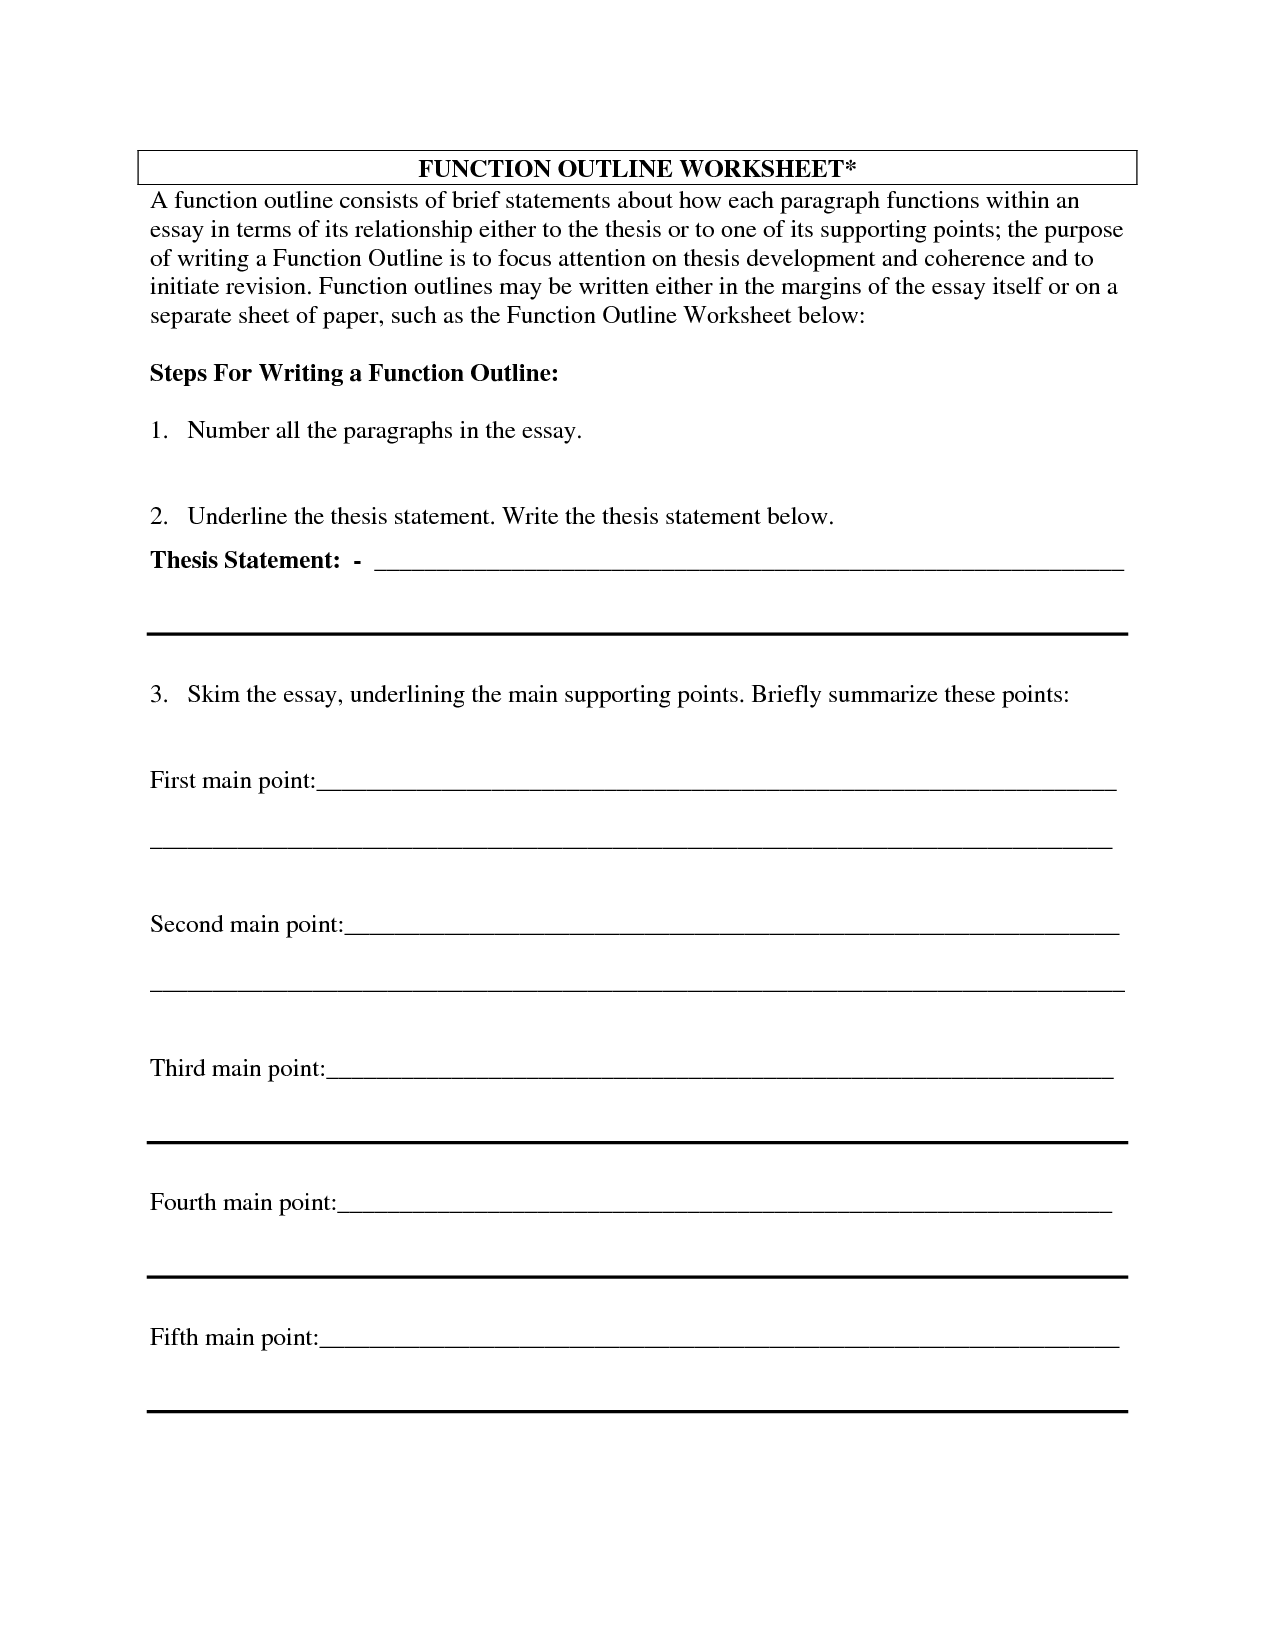 how to write an outline for a narrative essay On this page you can find information on narrative essay topics, a narrative essay format, a narrative essay thesis, a narrative essay structure you can also download a free narrative essay example.